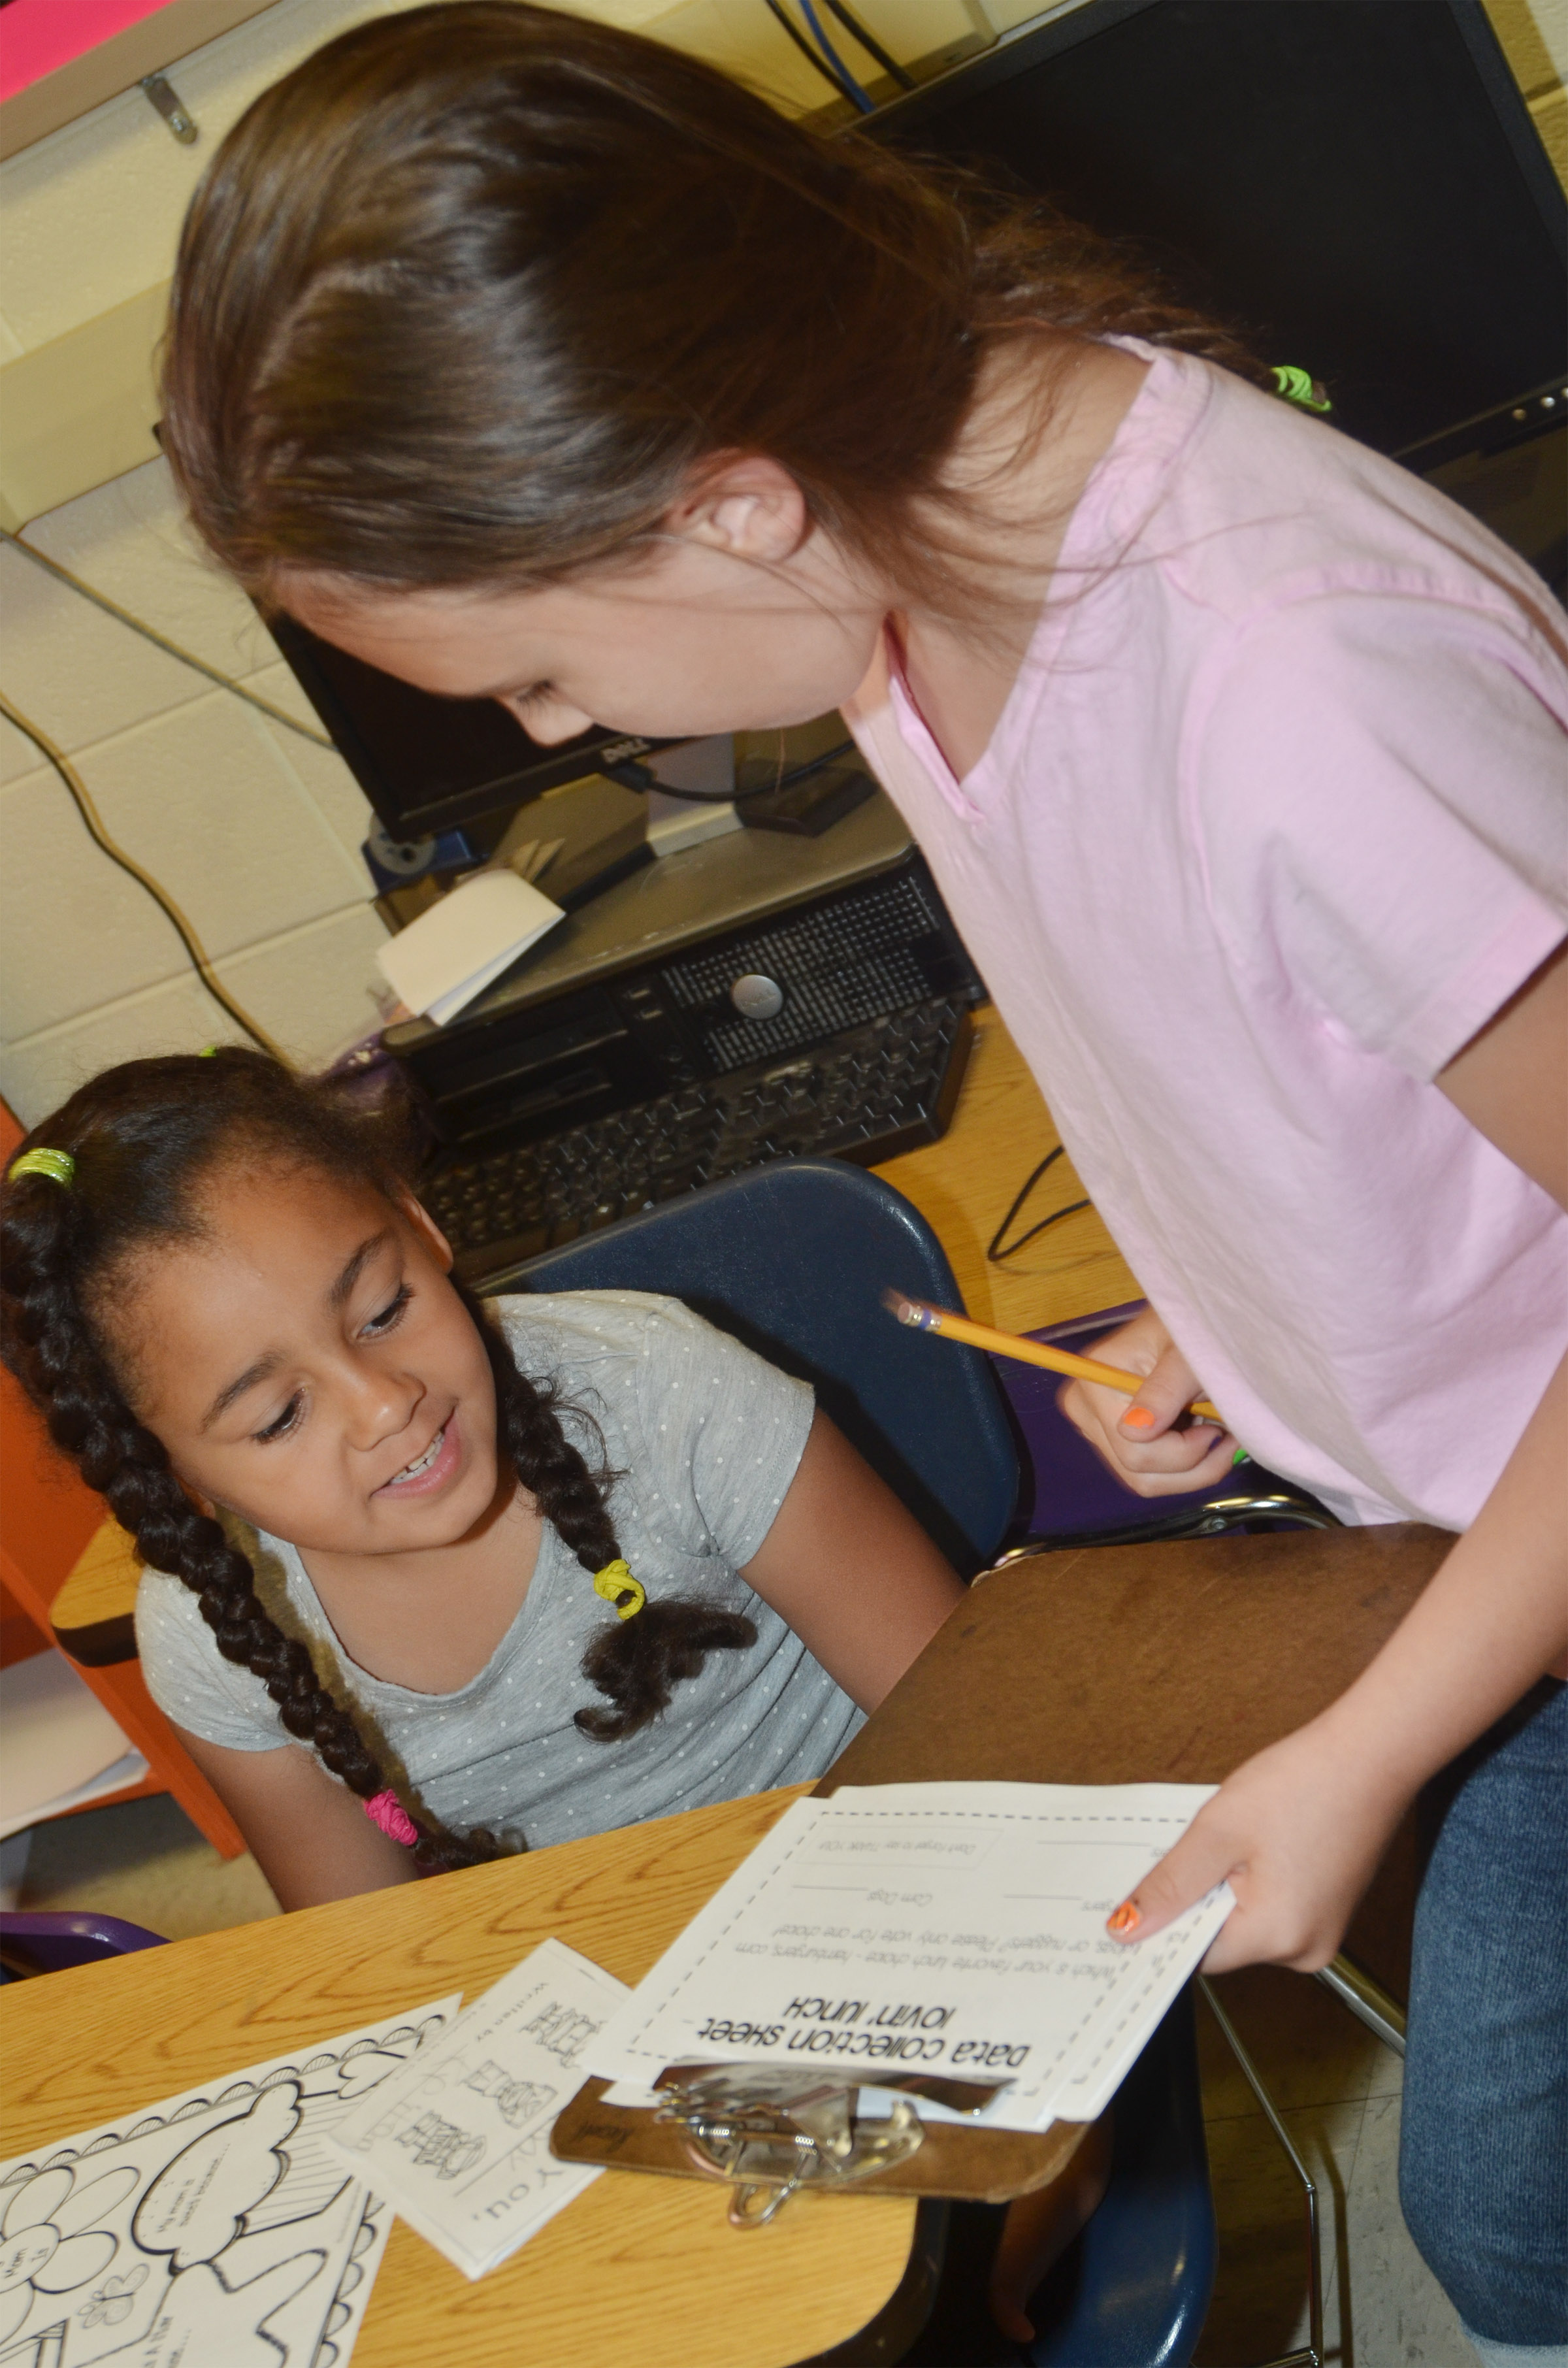 CES second-grader Annabelle Brockman interviews first-grader Keitona Whitehead.